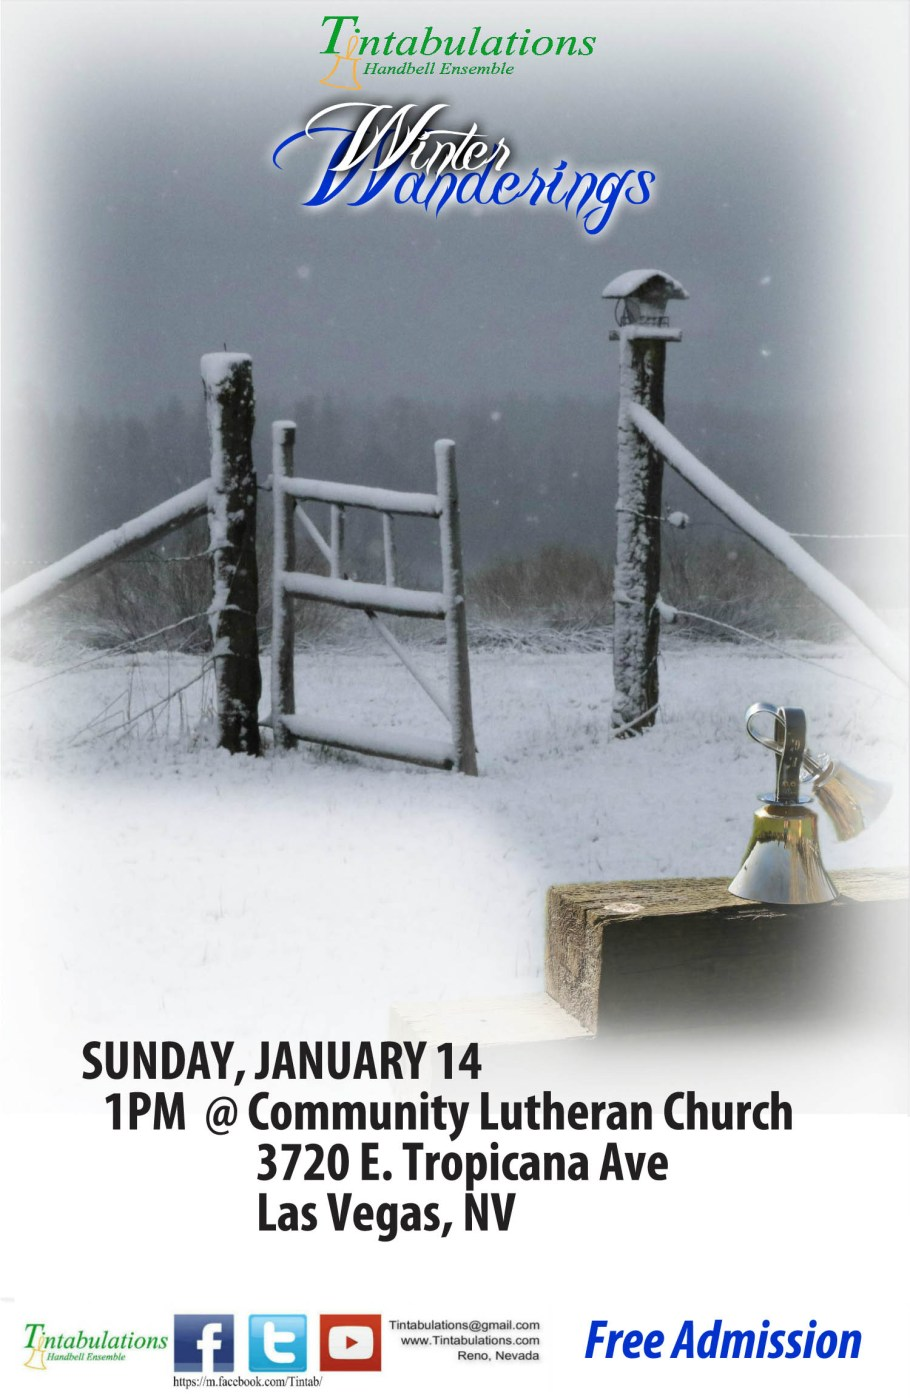 Concert flier for Tintabulations Winter Wanderings Concert on January 14th, 2017